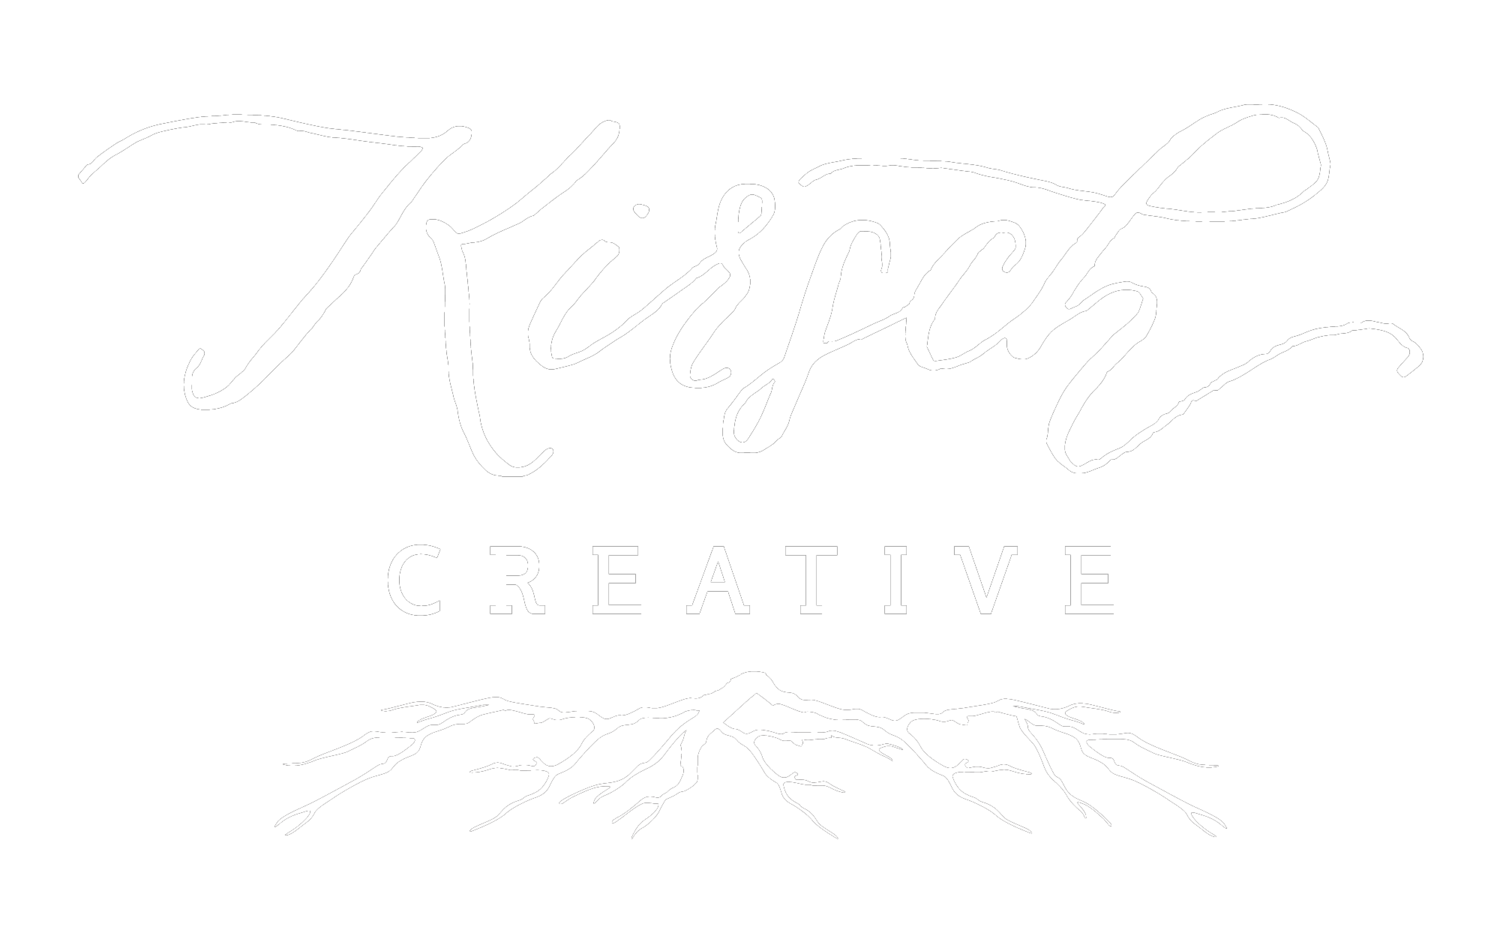 Kirsch Photography | Greater Seattle Area Portrait Photographer